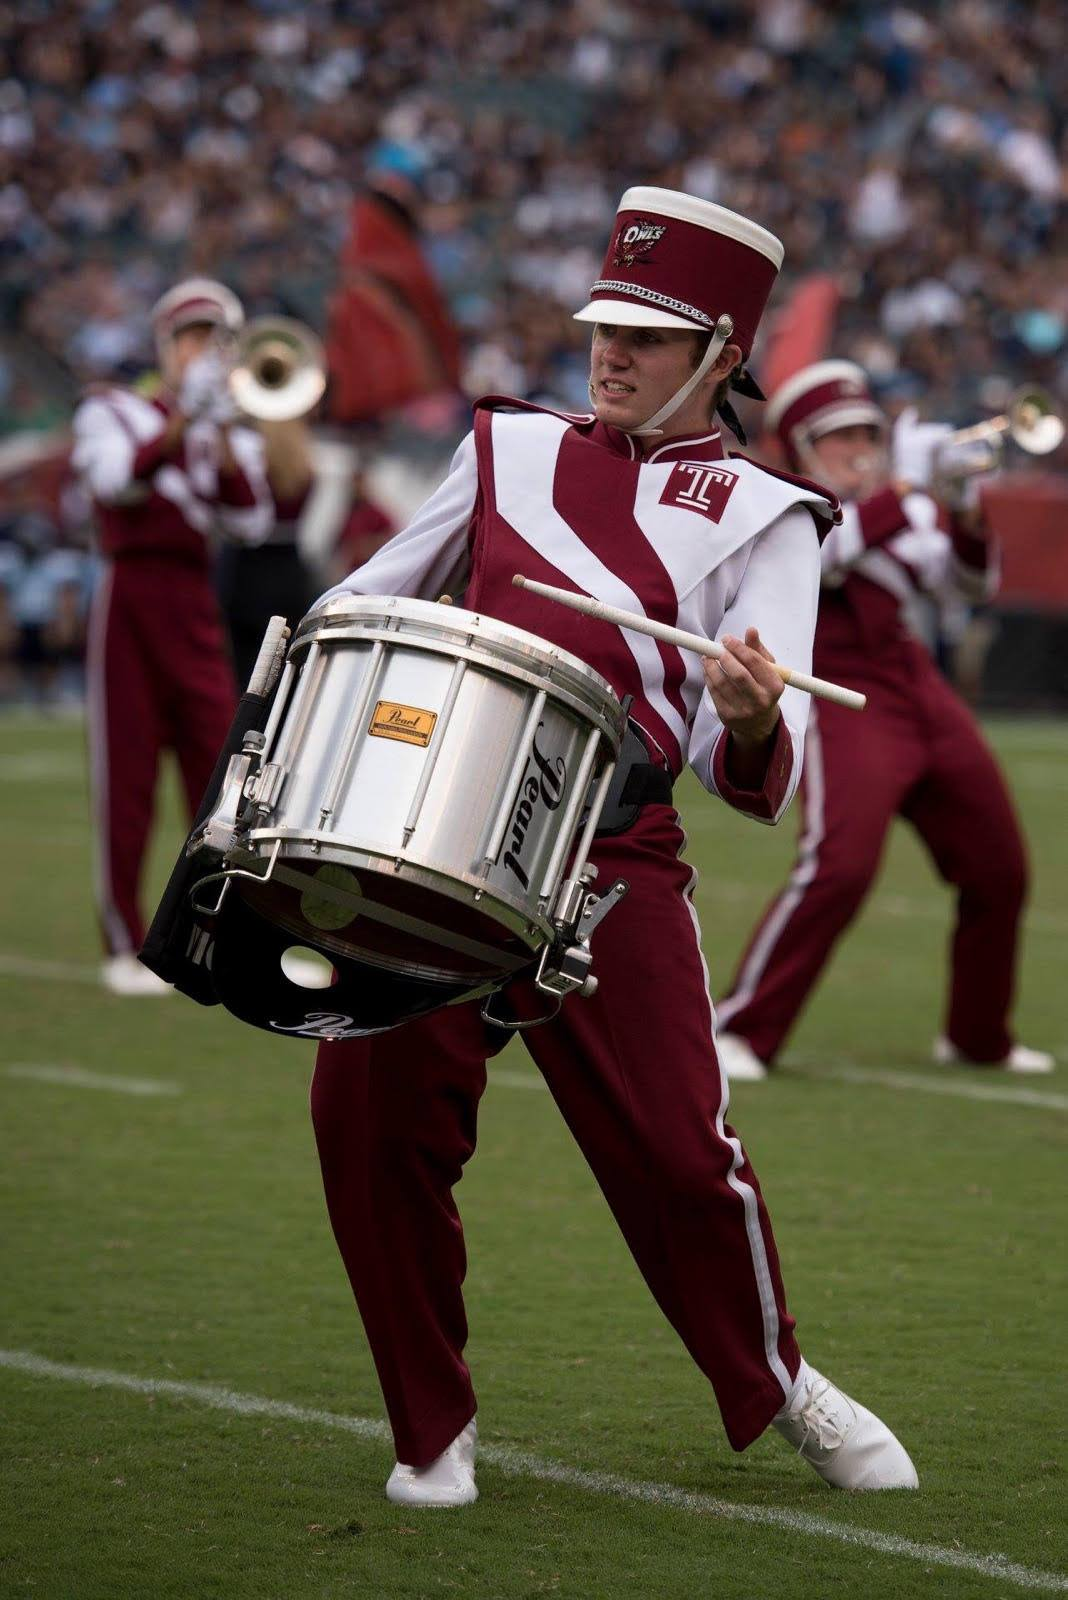 Jared now plays drums in Temple University's Marching Band